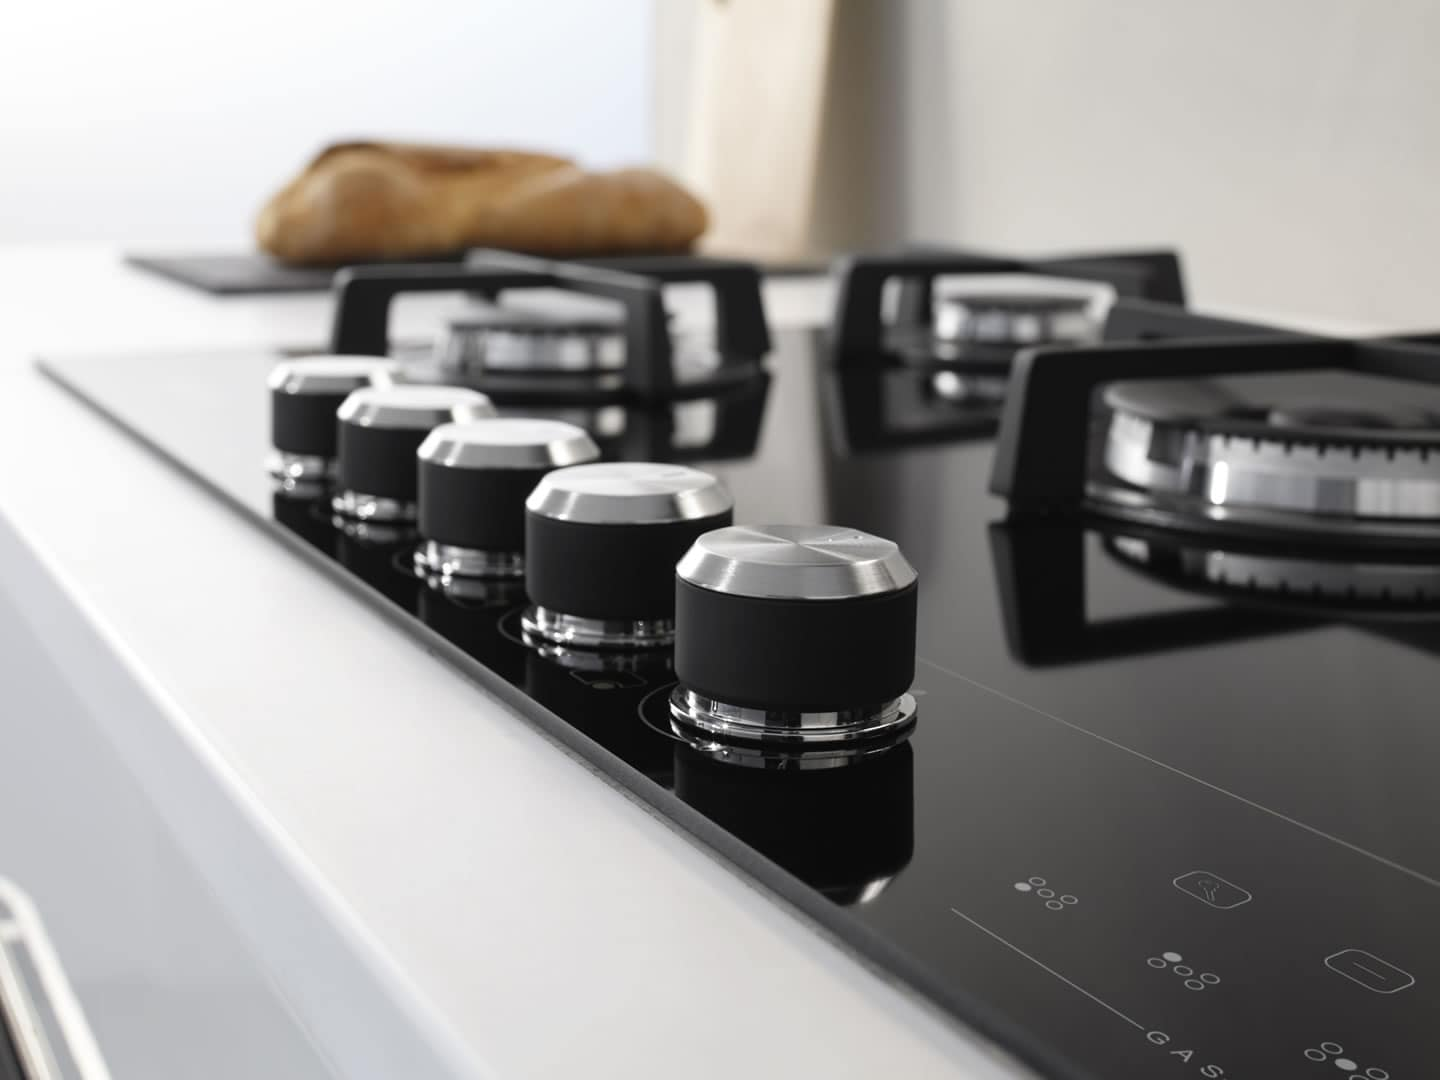 DeLonghi 90cm 5 Burner Electronic Gas on Glass Cooktop - DEGMATIK90 - Lifestyle Image